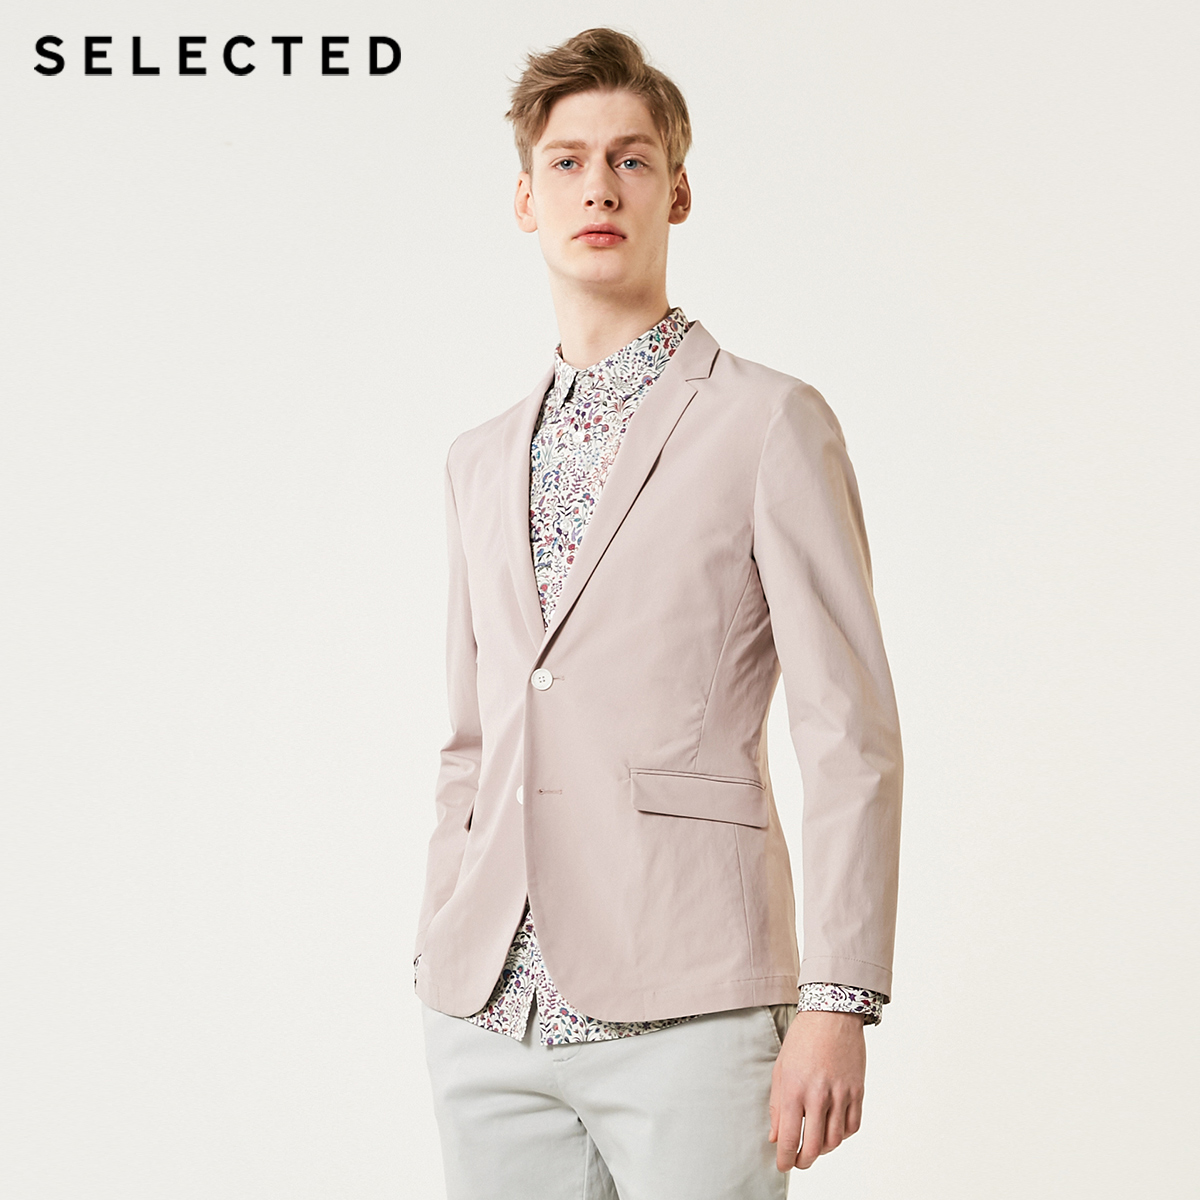 SELECTED Men's Slightly Stretch Notched Collar Skinny Business Casual Blazer Jacket S|419208511